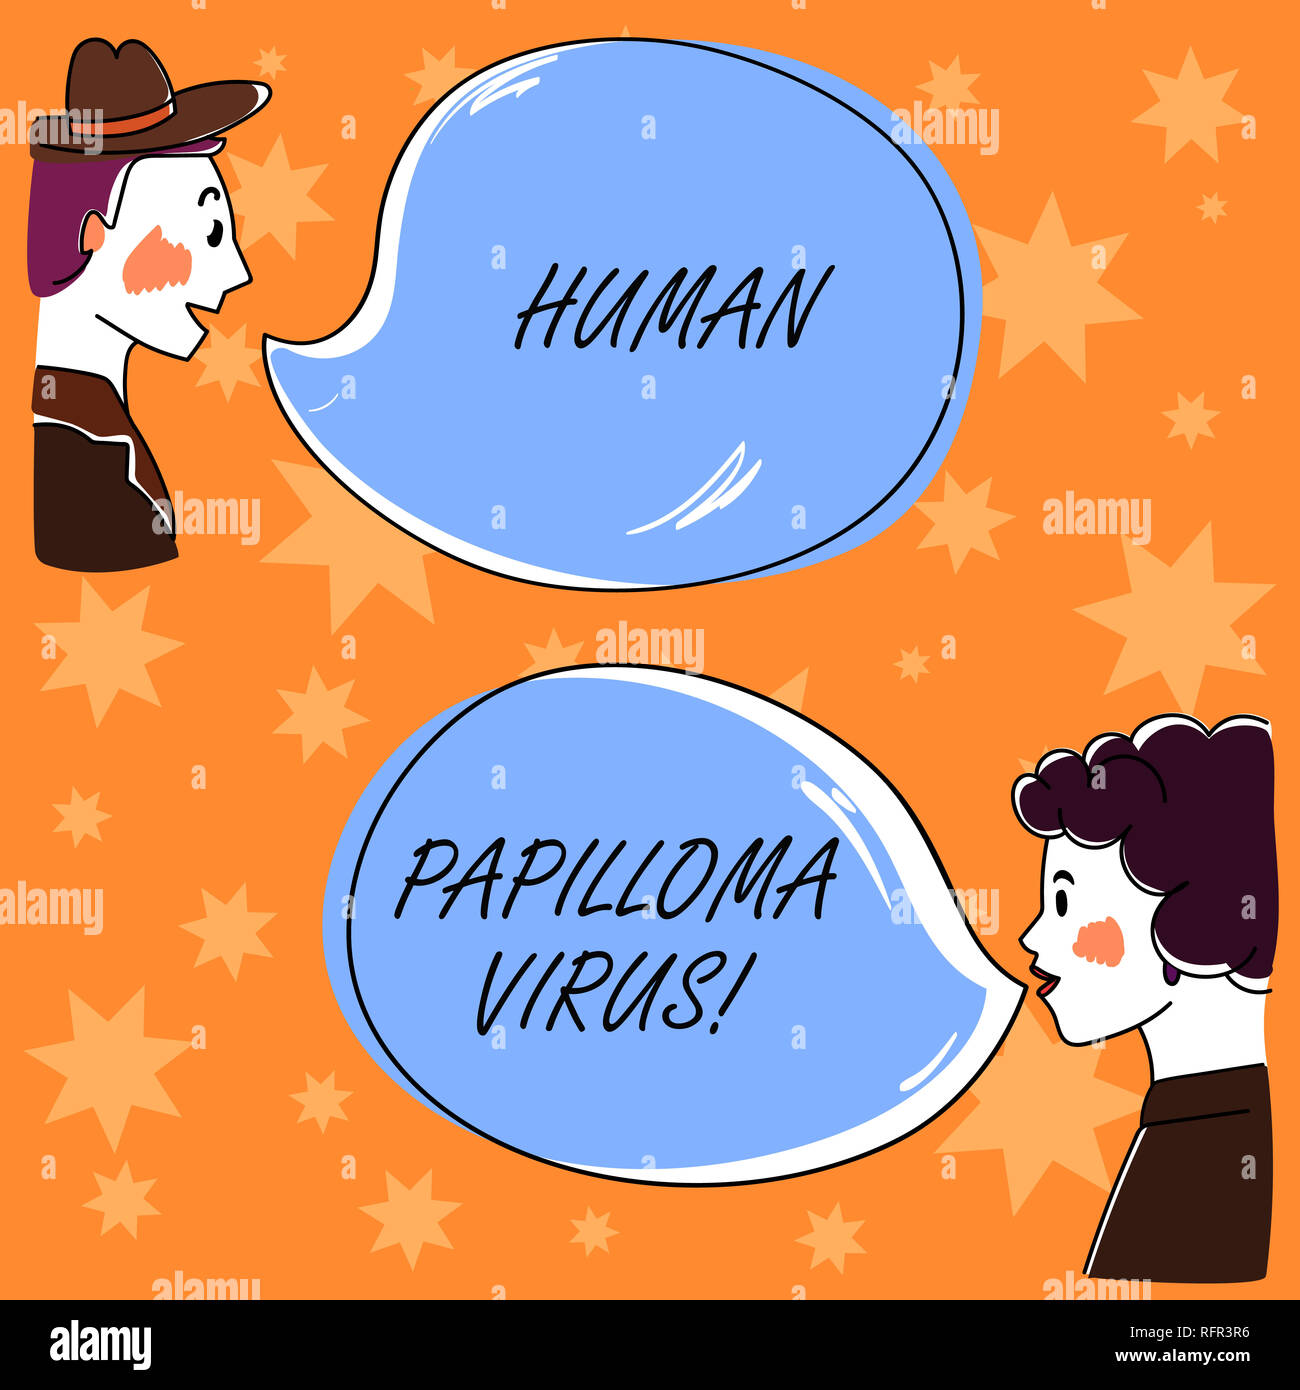 831 Sexually Transmitted Disease Illustrations, Royalty-Free Vector  Graphics & Clip Art - iStock